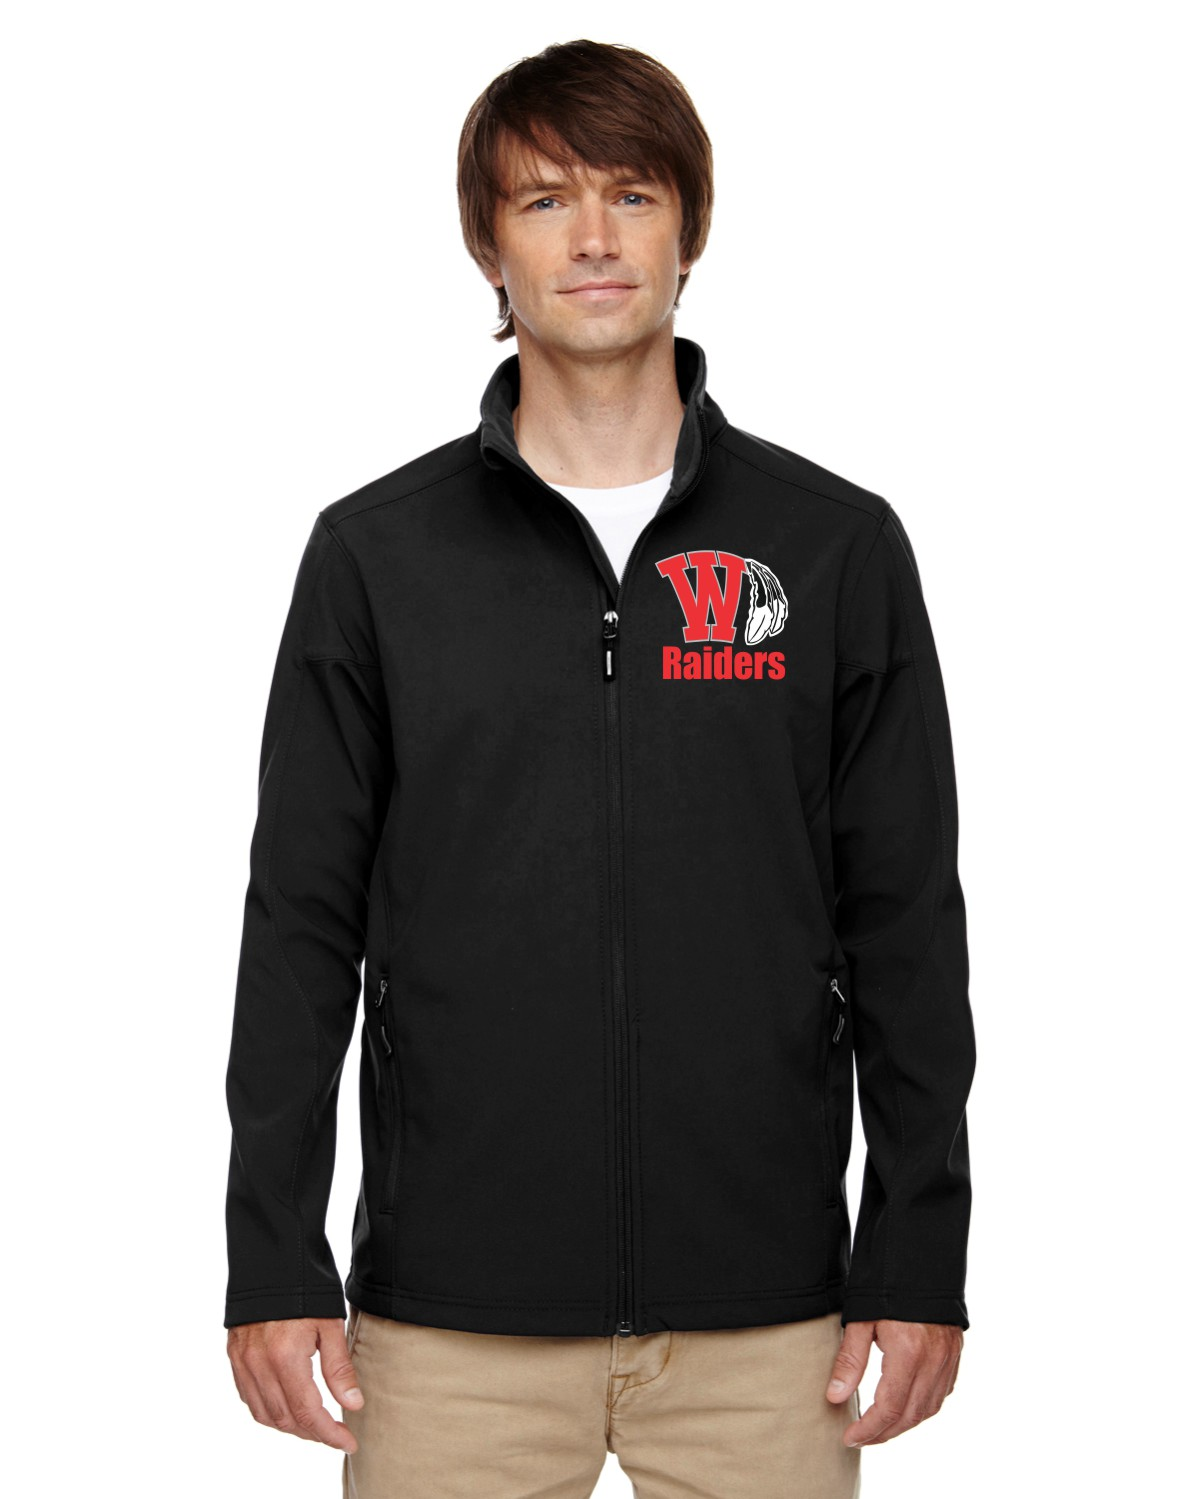 Men's Soft Shell Raiders Jacket